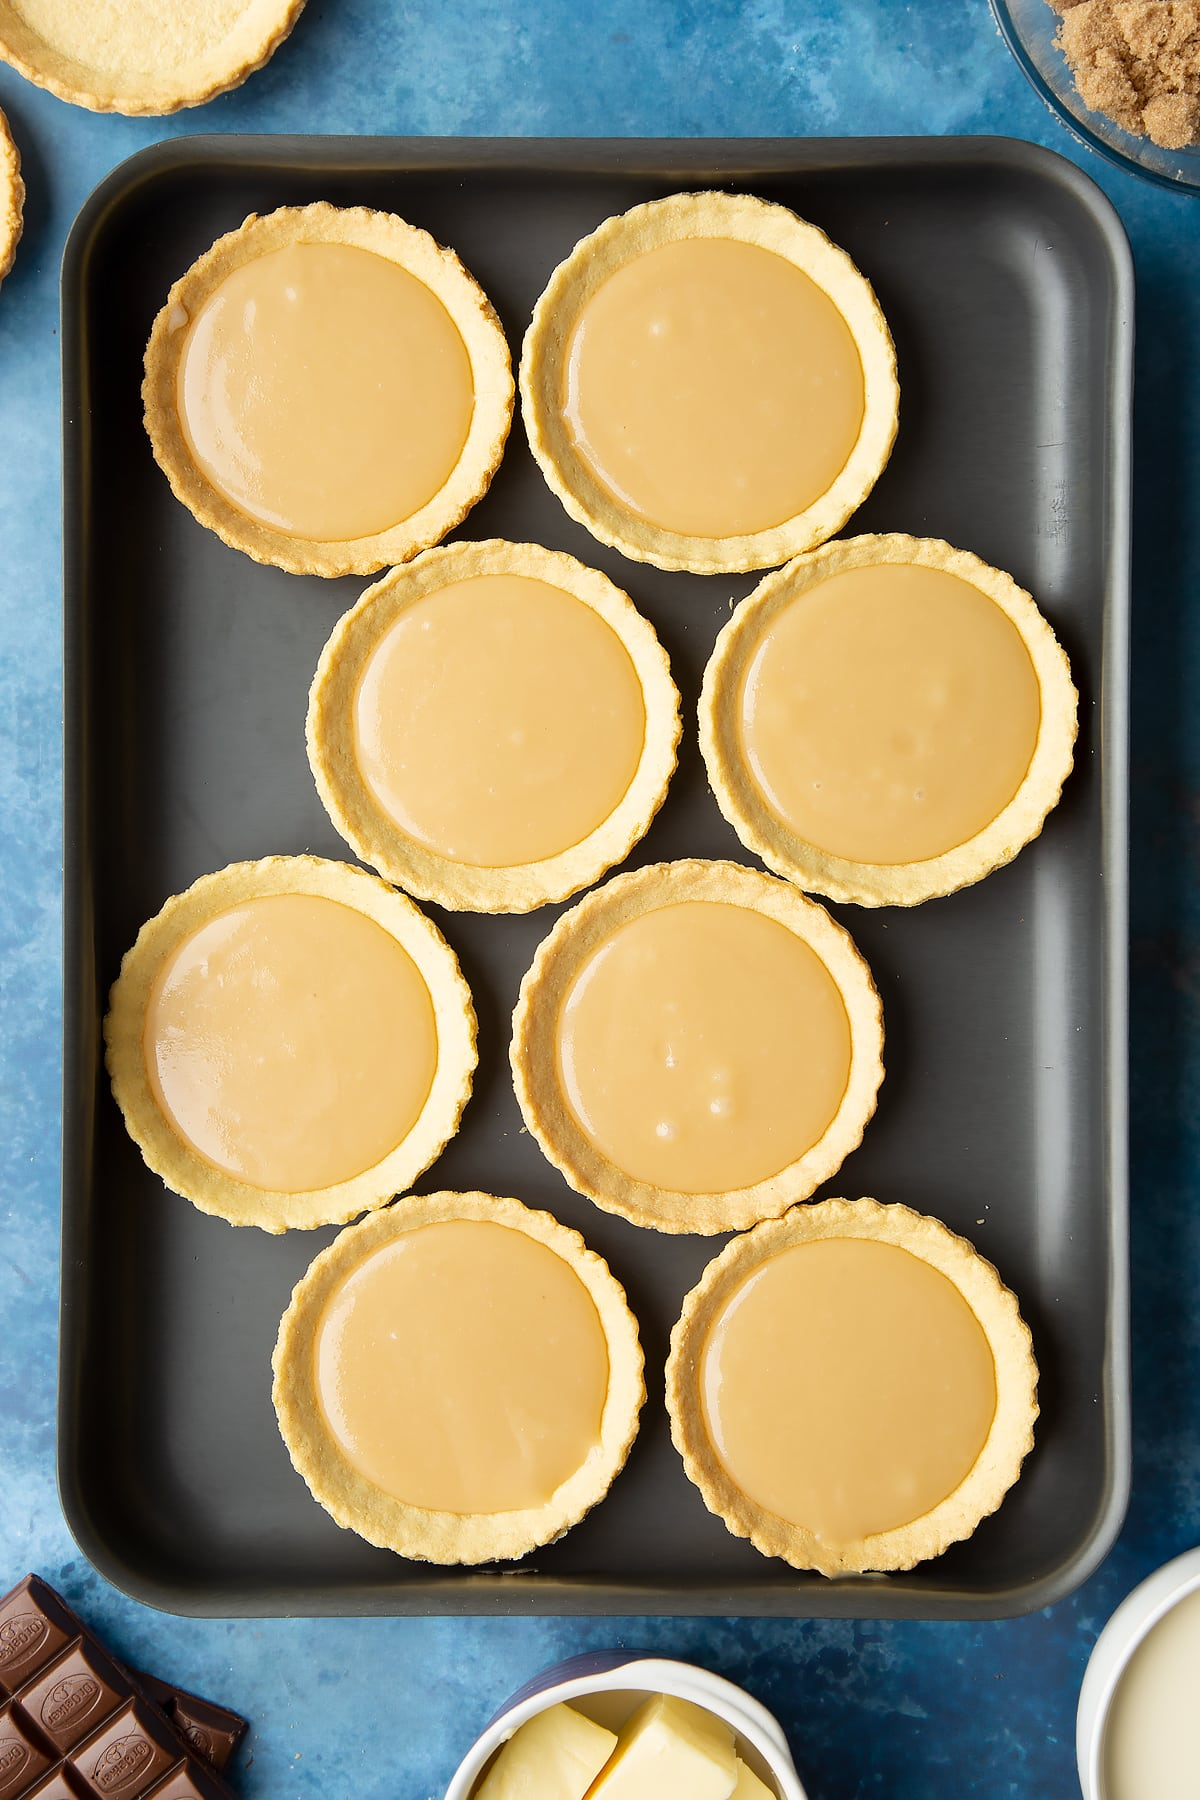 Small pastry cases filled with caramel on a large metal baking tray. Ingredients to make mini chocolate tarts surround the tray.